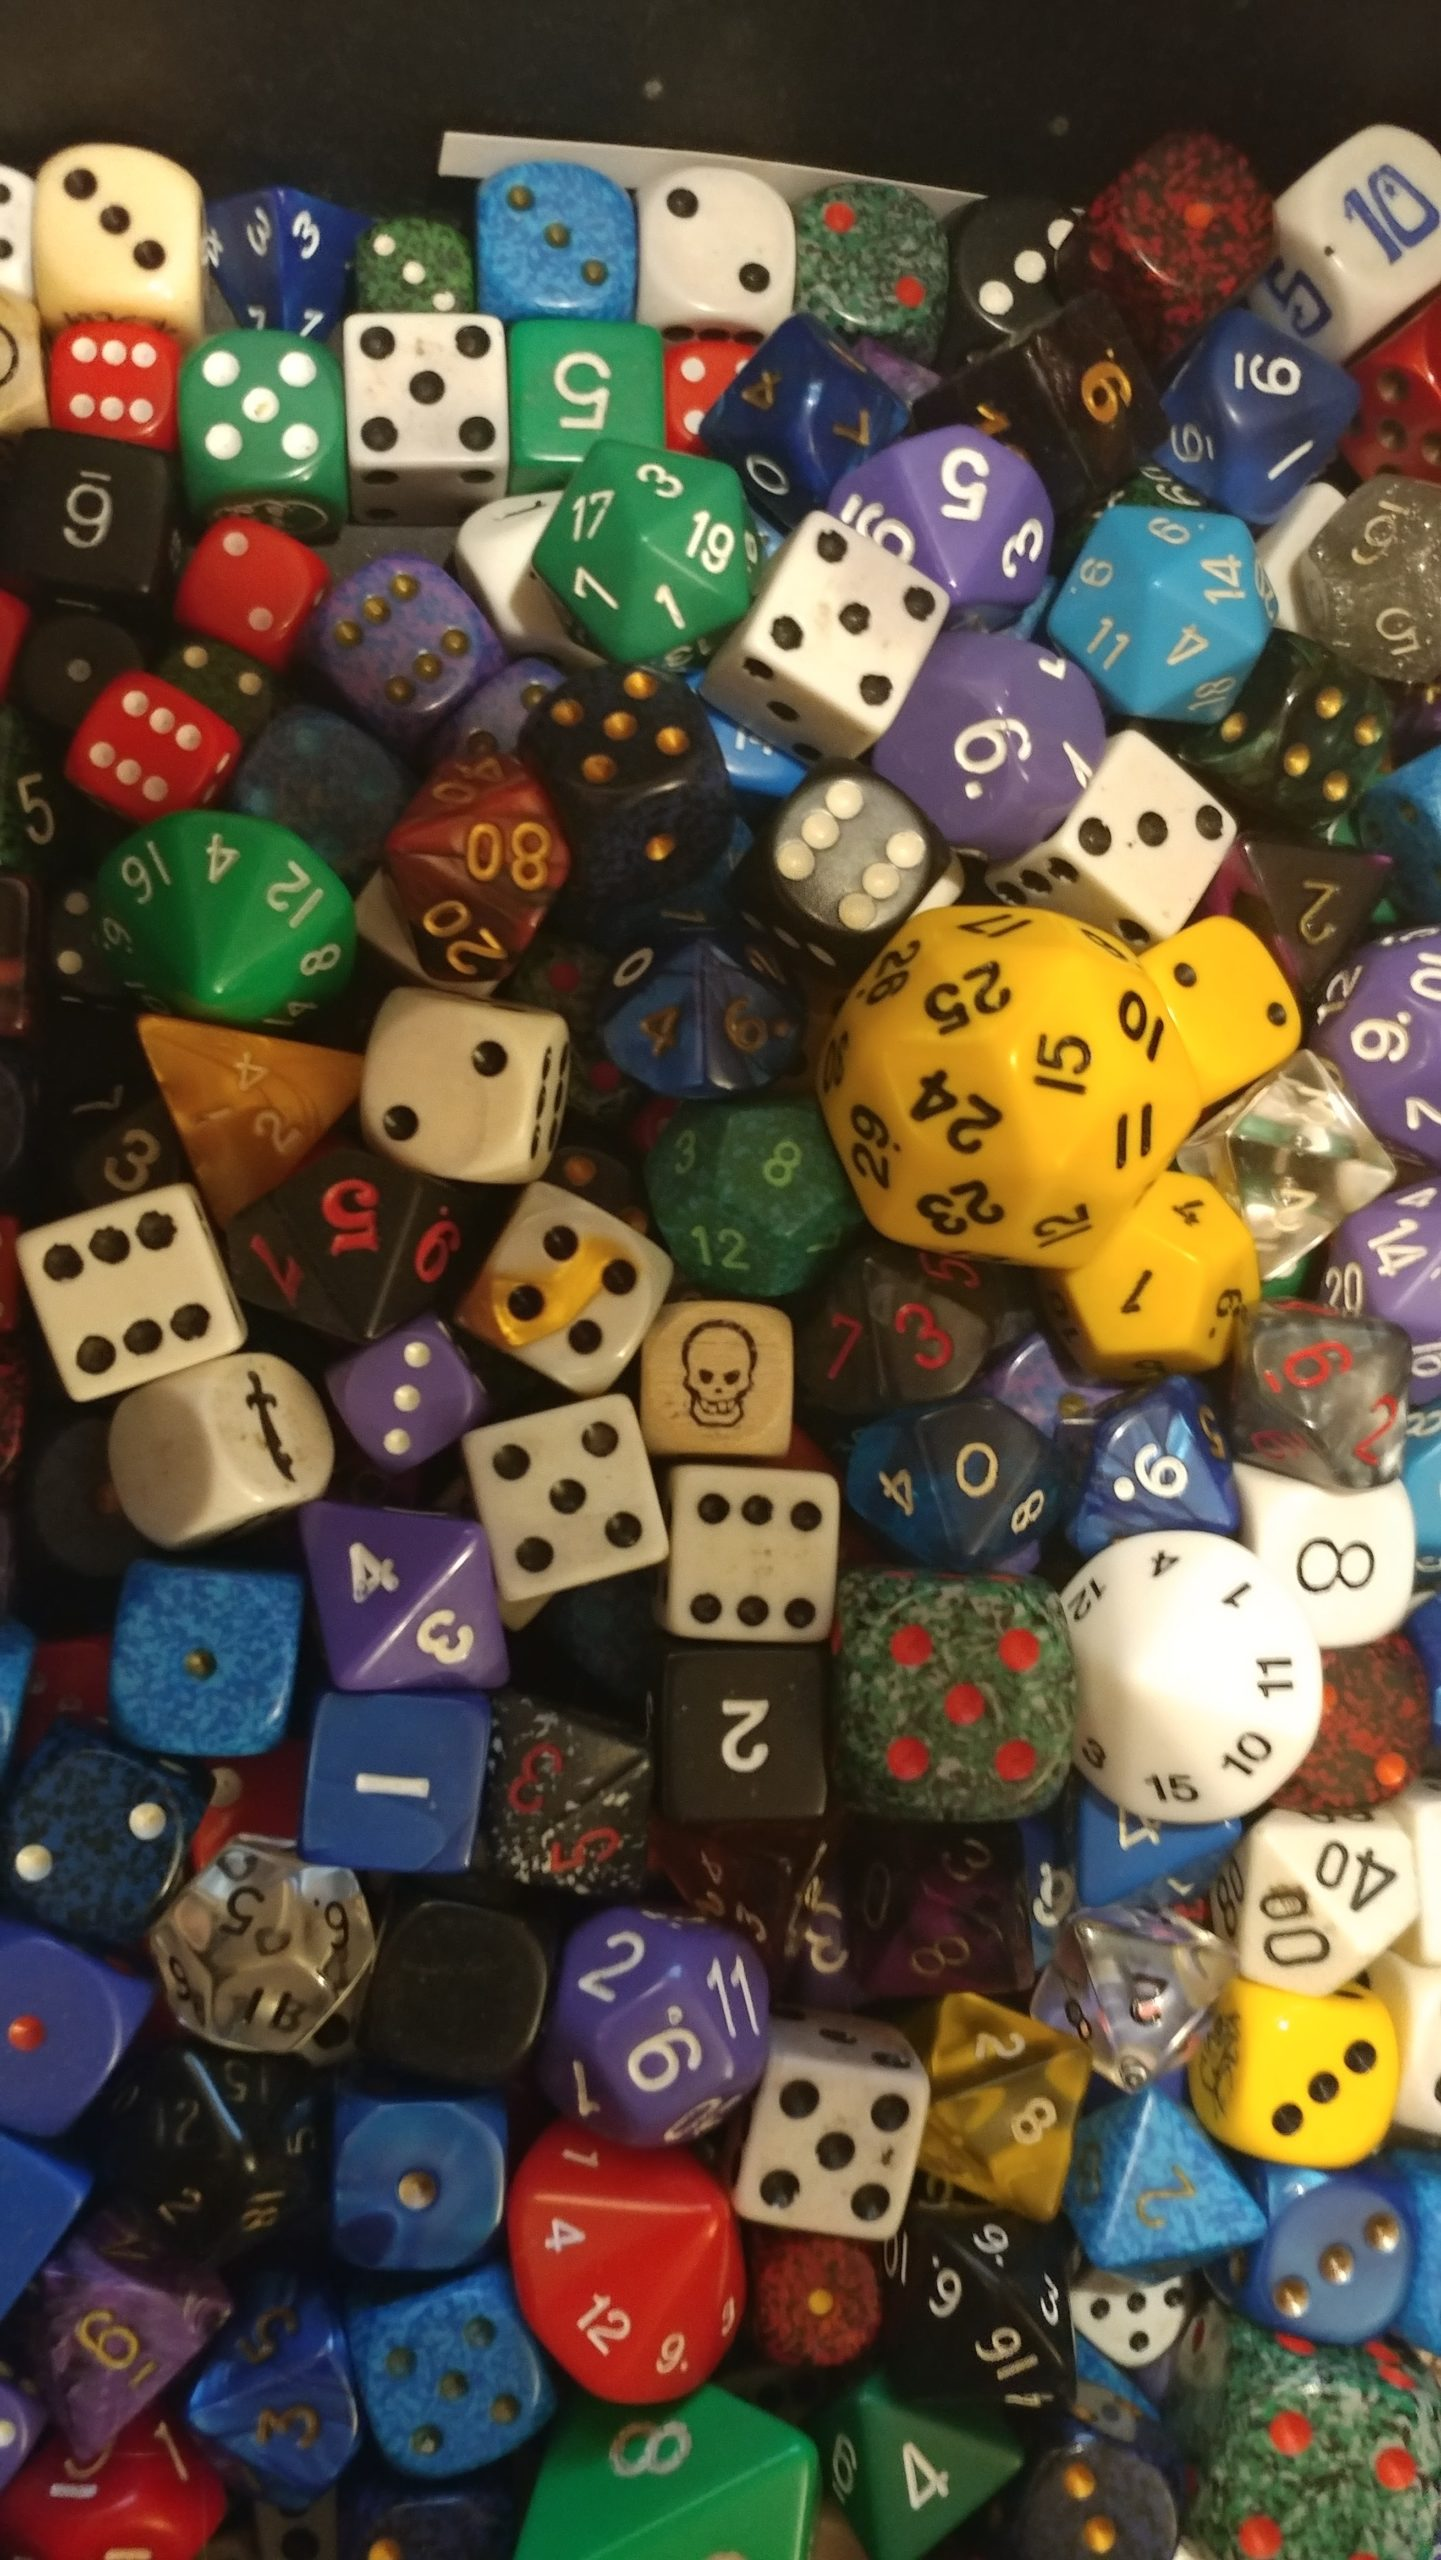 A large and varied pile of dice.